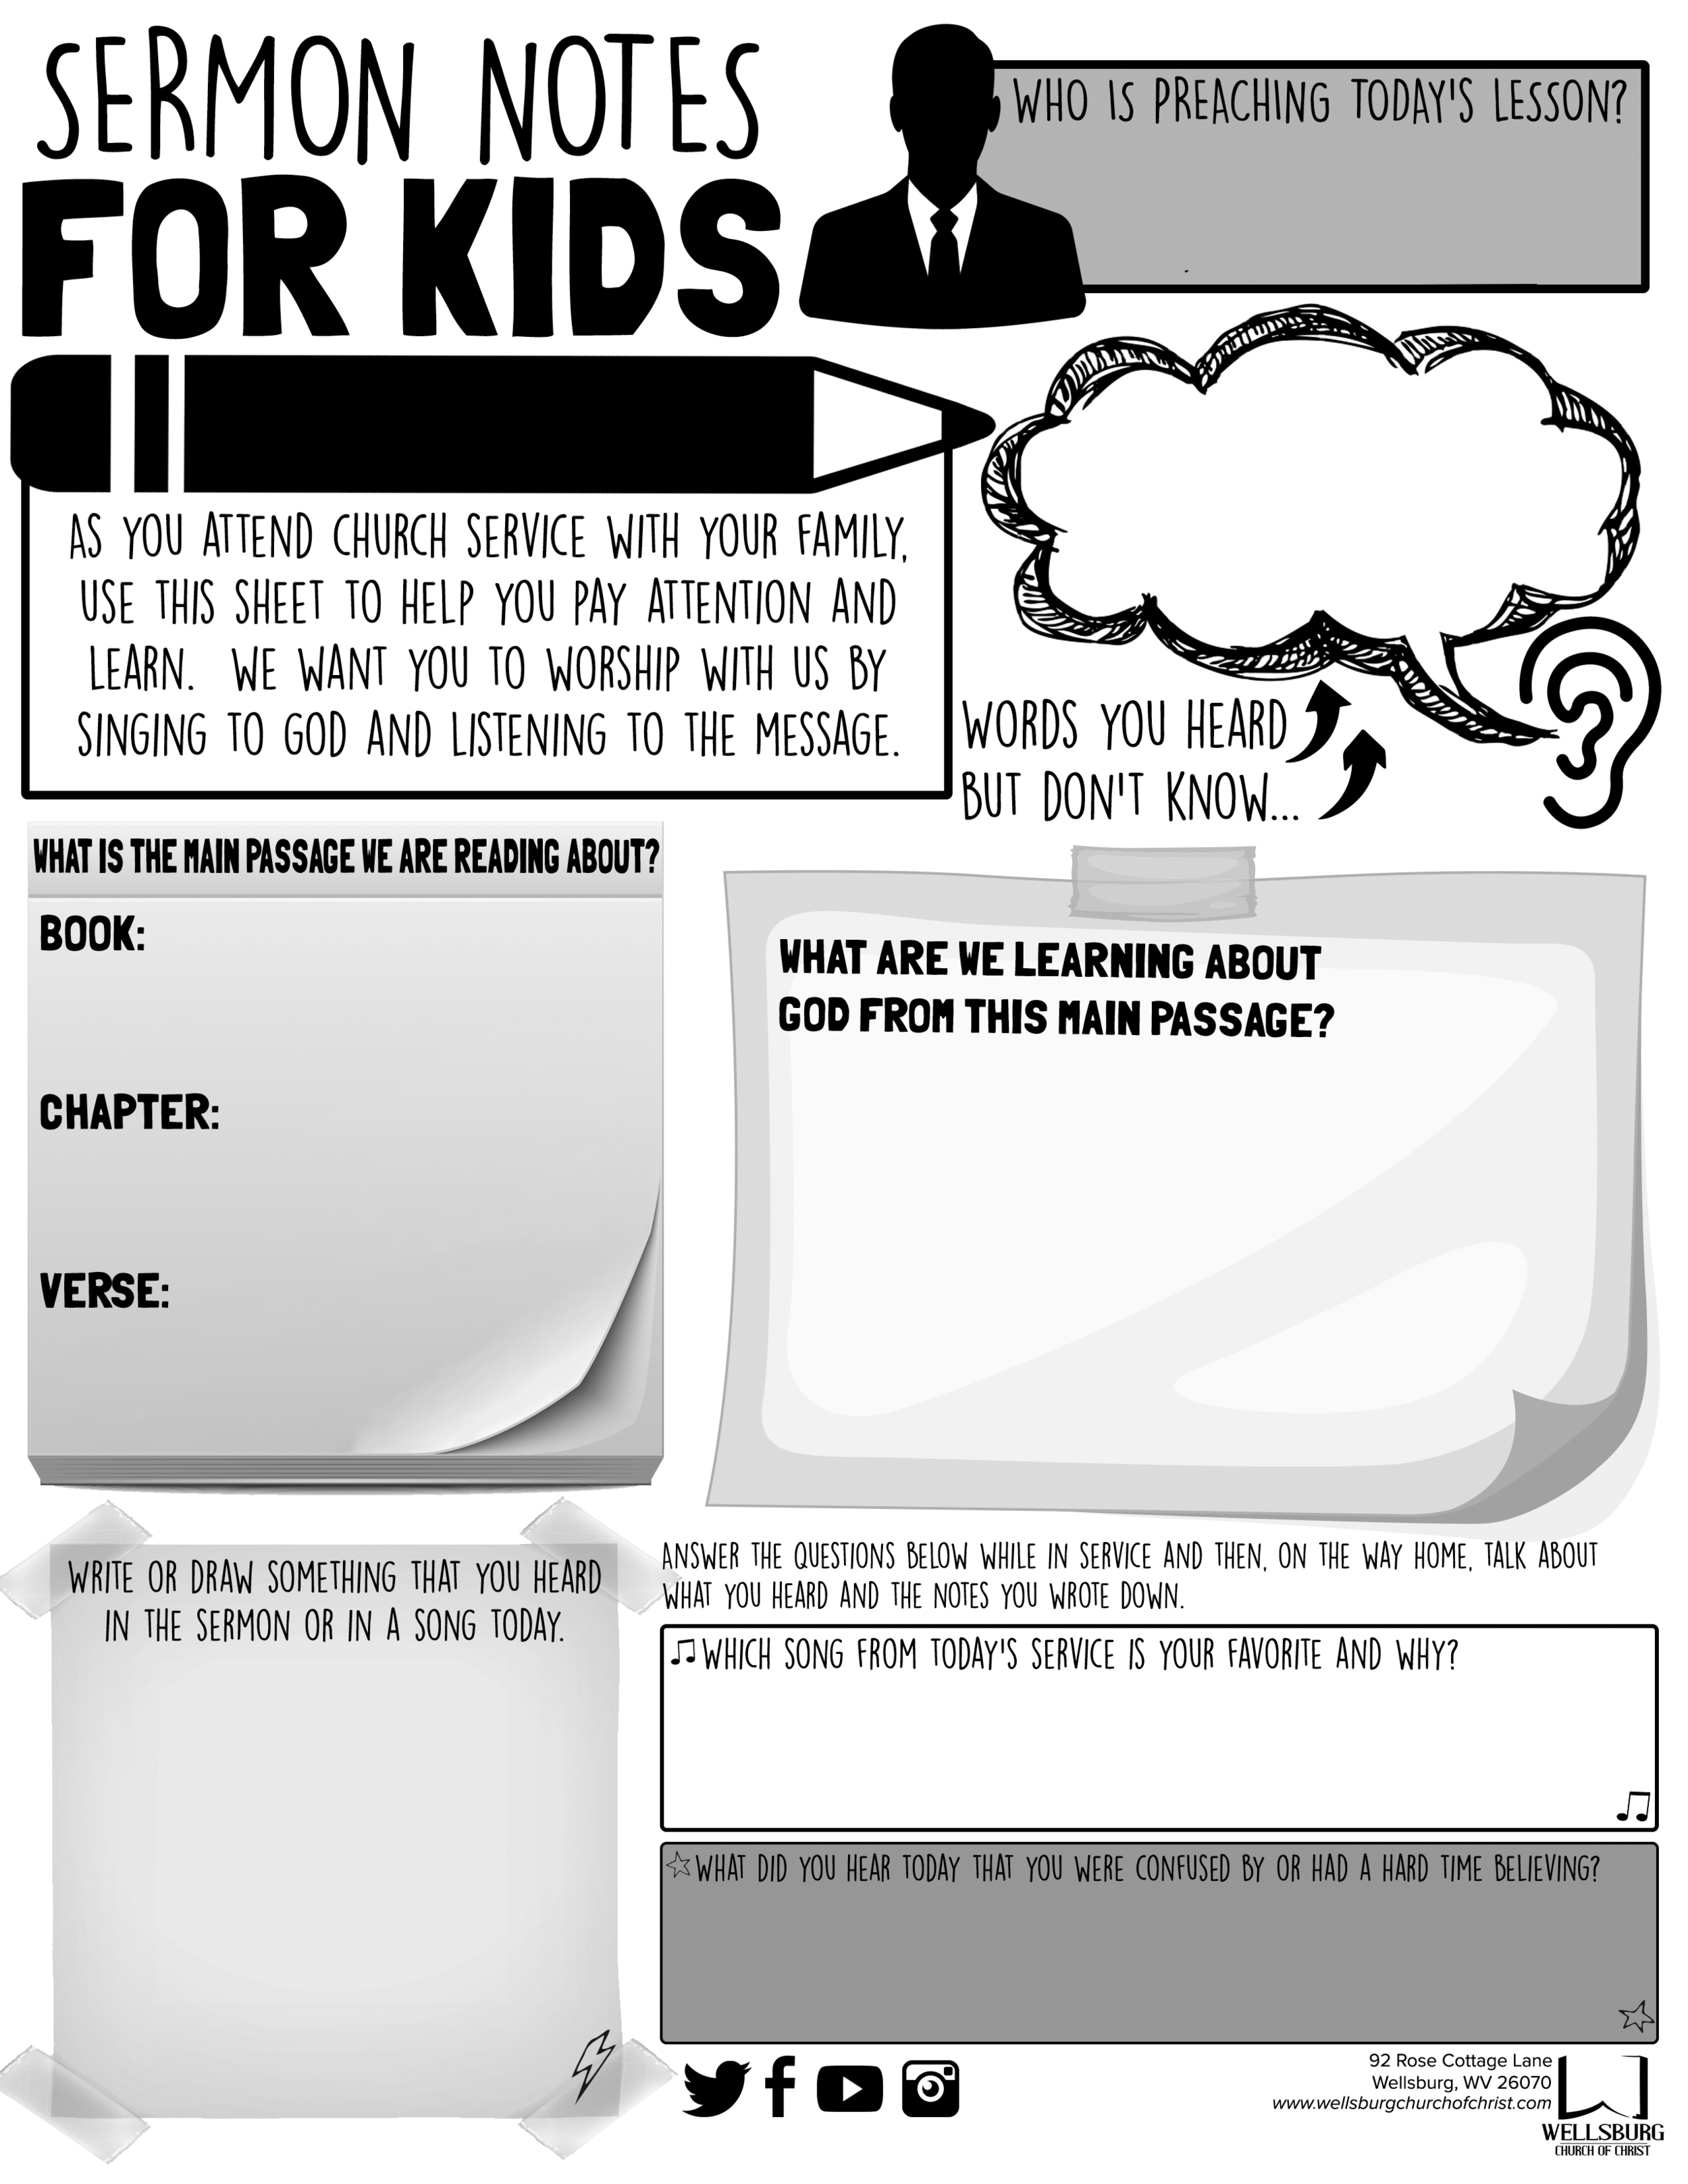 SERMON NOTES FOR KIDS (TEENAGER)